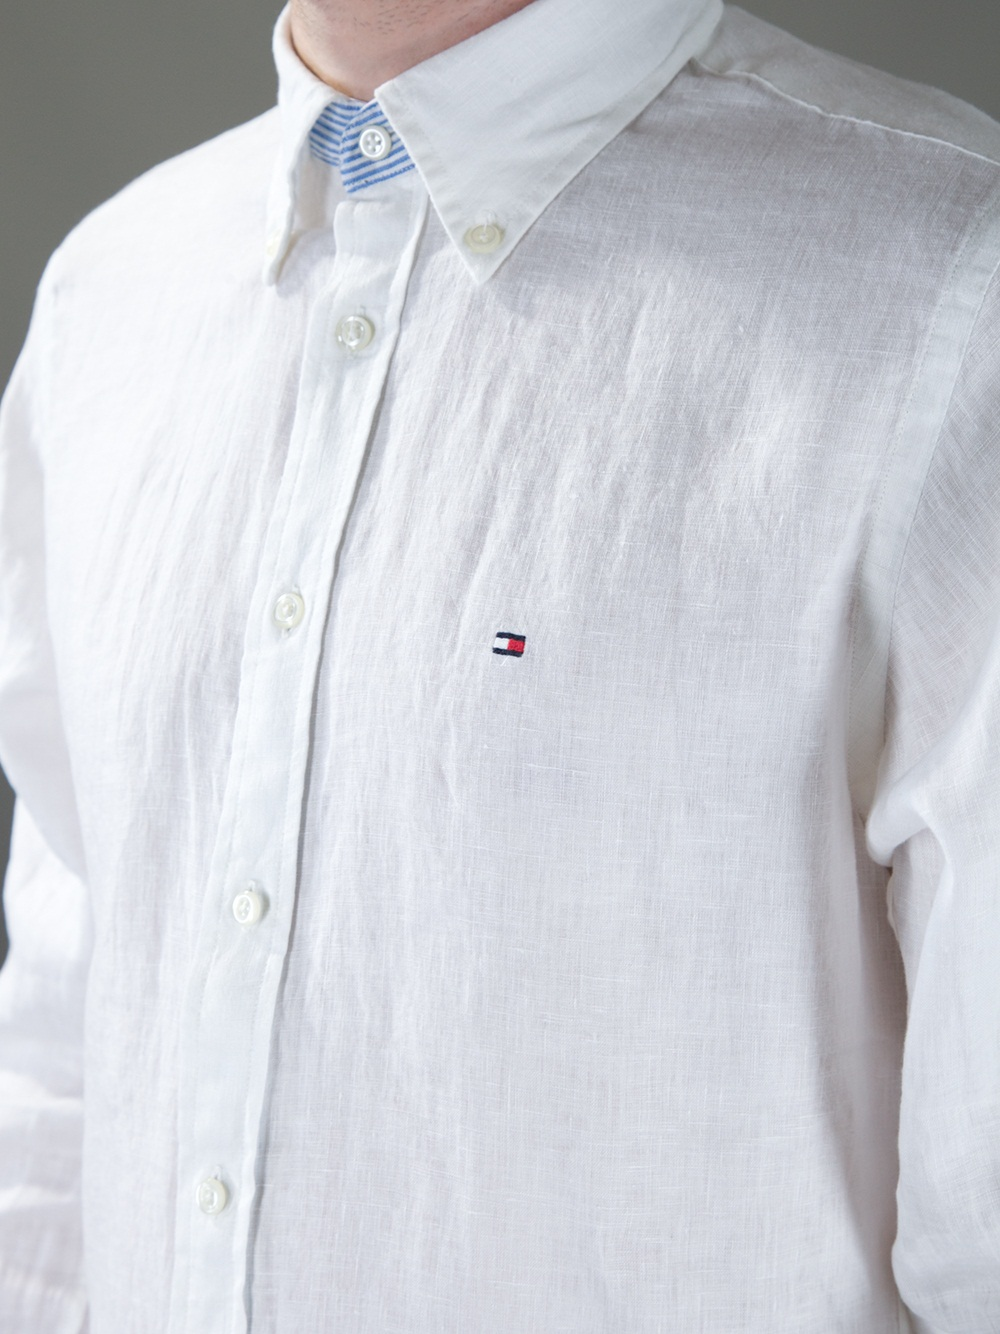 2db6e7f4b836 Lyst - Tommy Hilfiger Classic Linen Shirt in White for Men